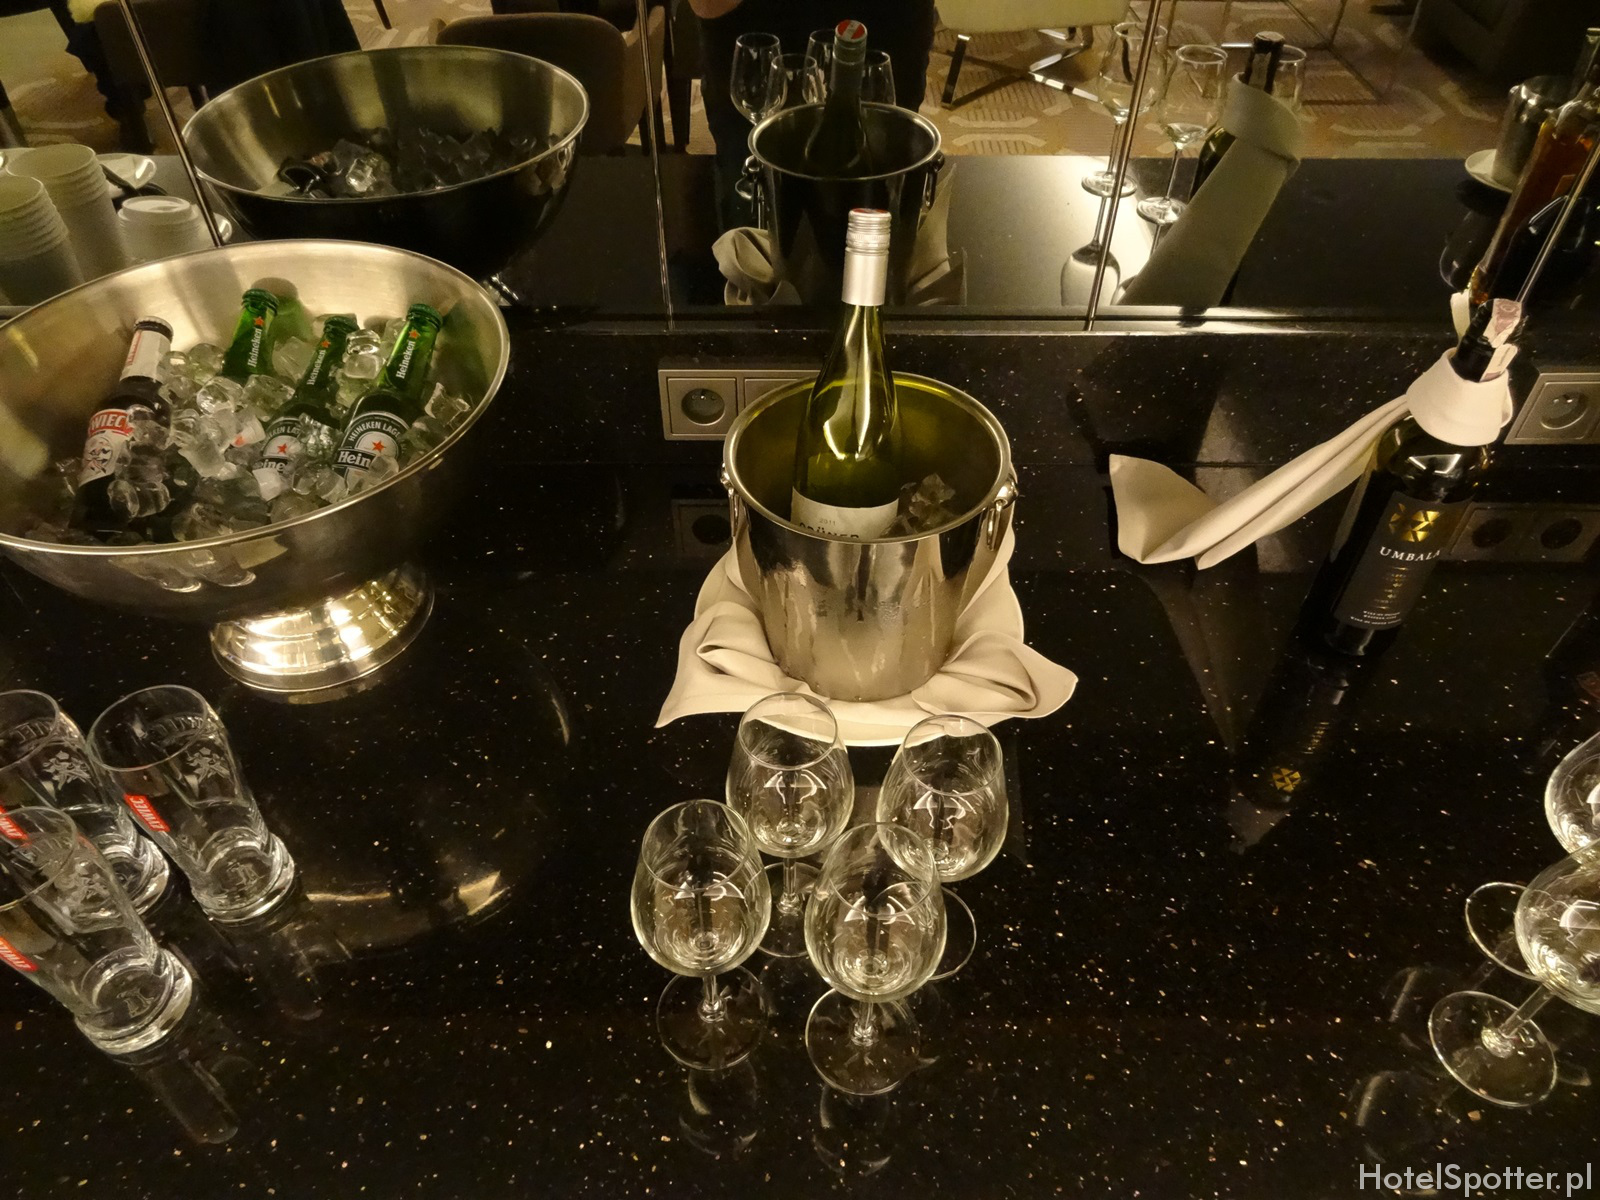 Salonik Executive Lounge w DoubleTree by Hilton Warsaw - piwo i wino